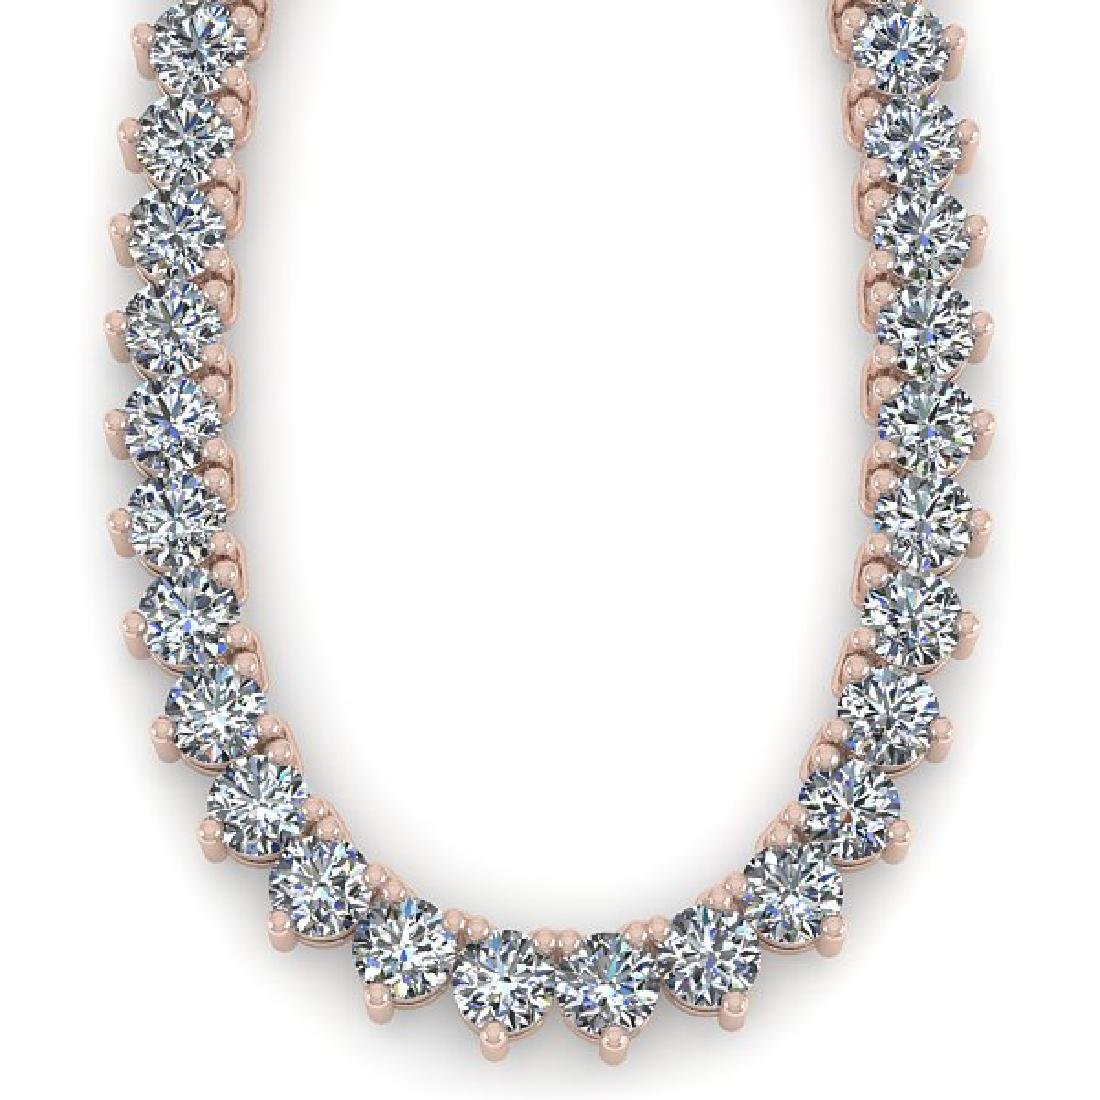 65 CTW Solitaire Certified SI Diamond Necklace 14K Rose - 2